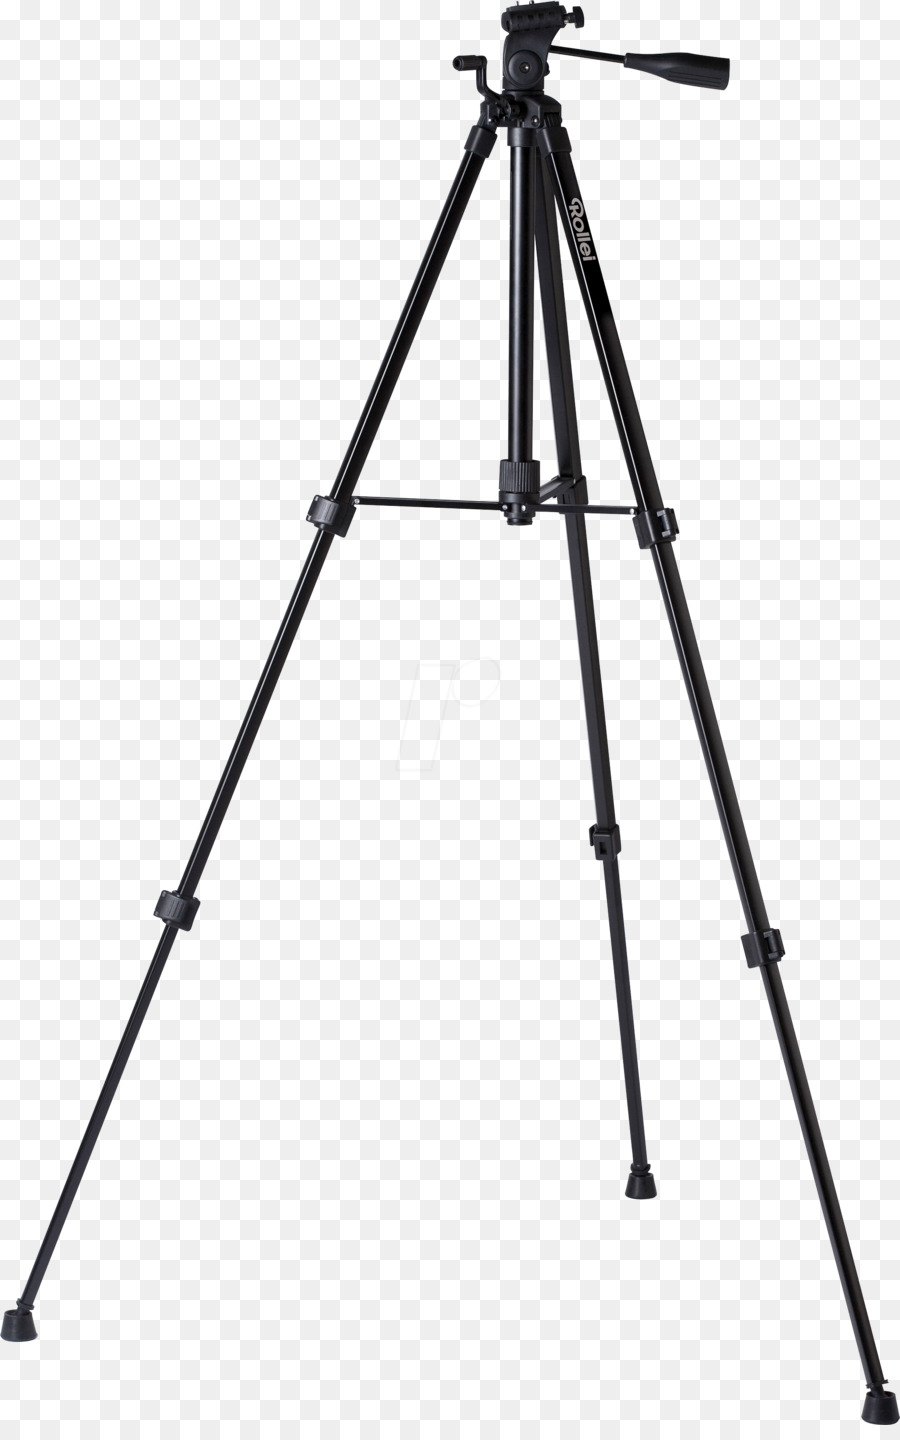 Amazon Stativ Stativ Amazon Manfrotto Video Kameras Stativ Skulptur Png